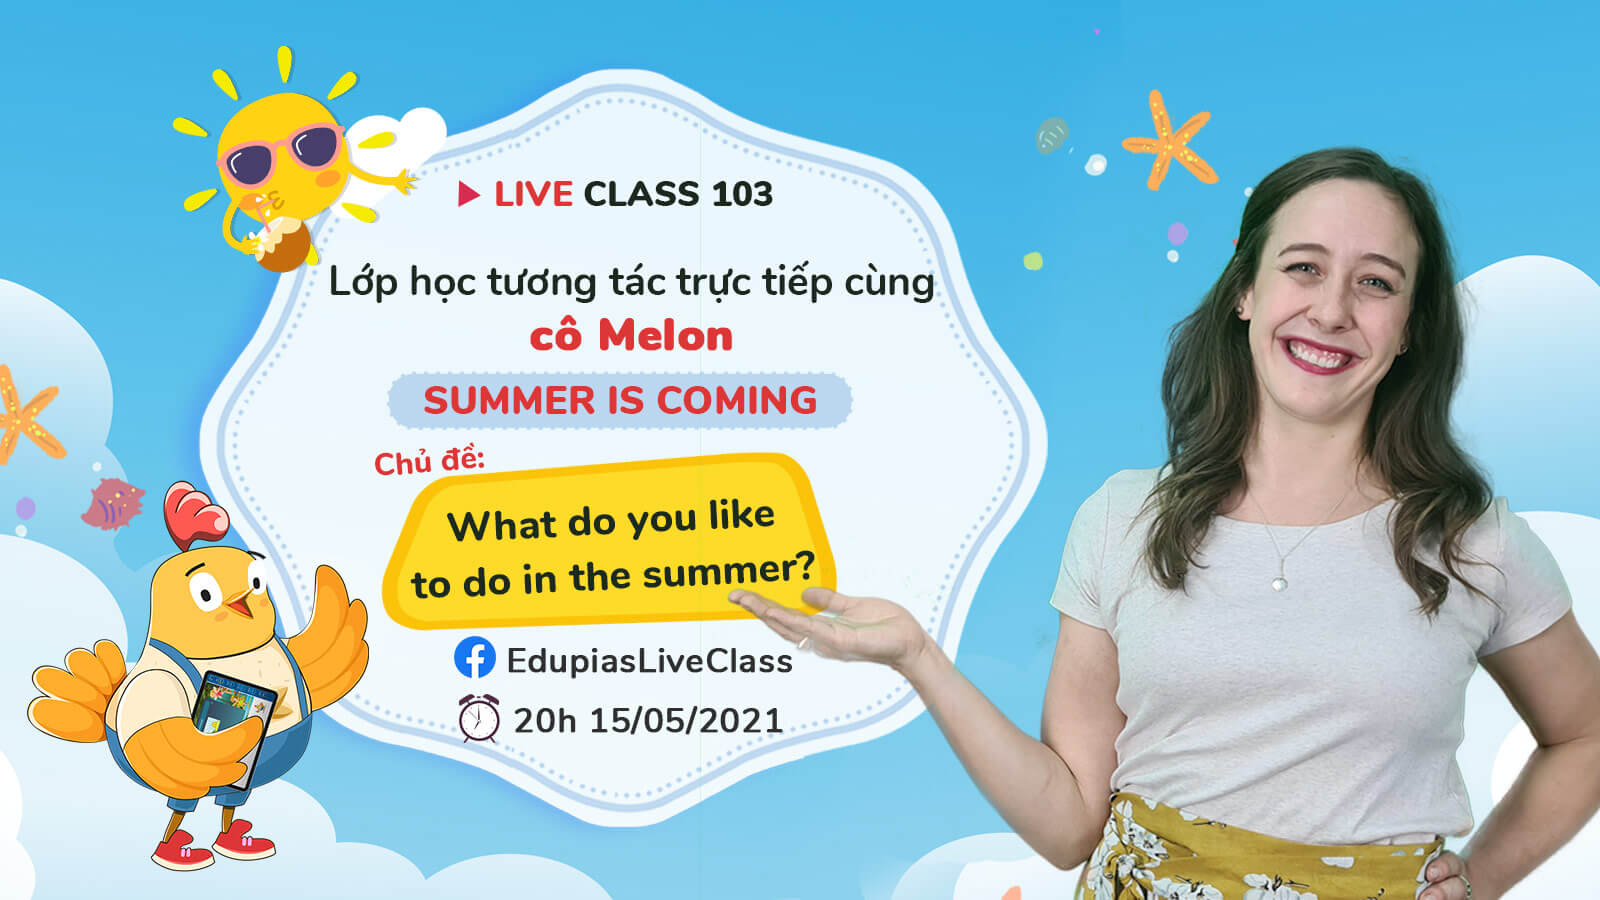 Live class tuần 103 - Chủ đề: What do you like to do in the summer?